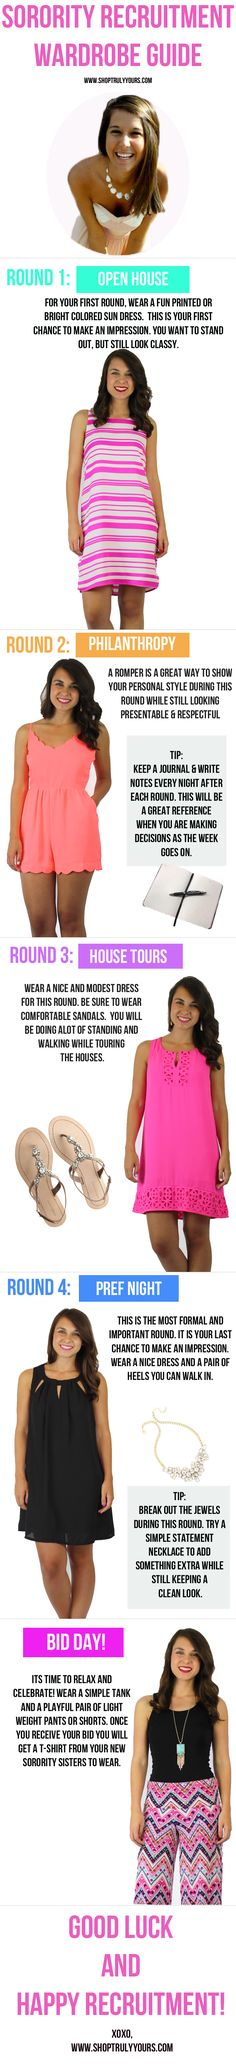 Sorority recruitment outfits and tips   What to wear during each round of sorority recruitment.